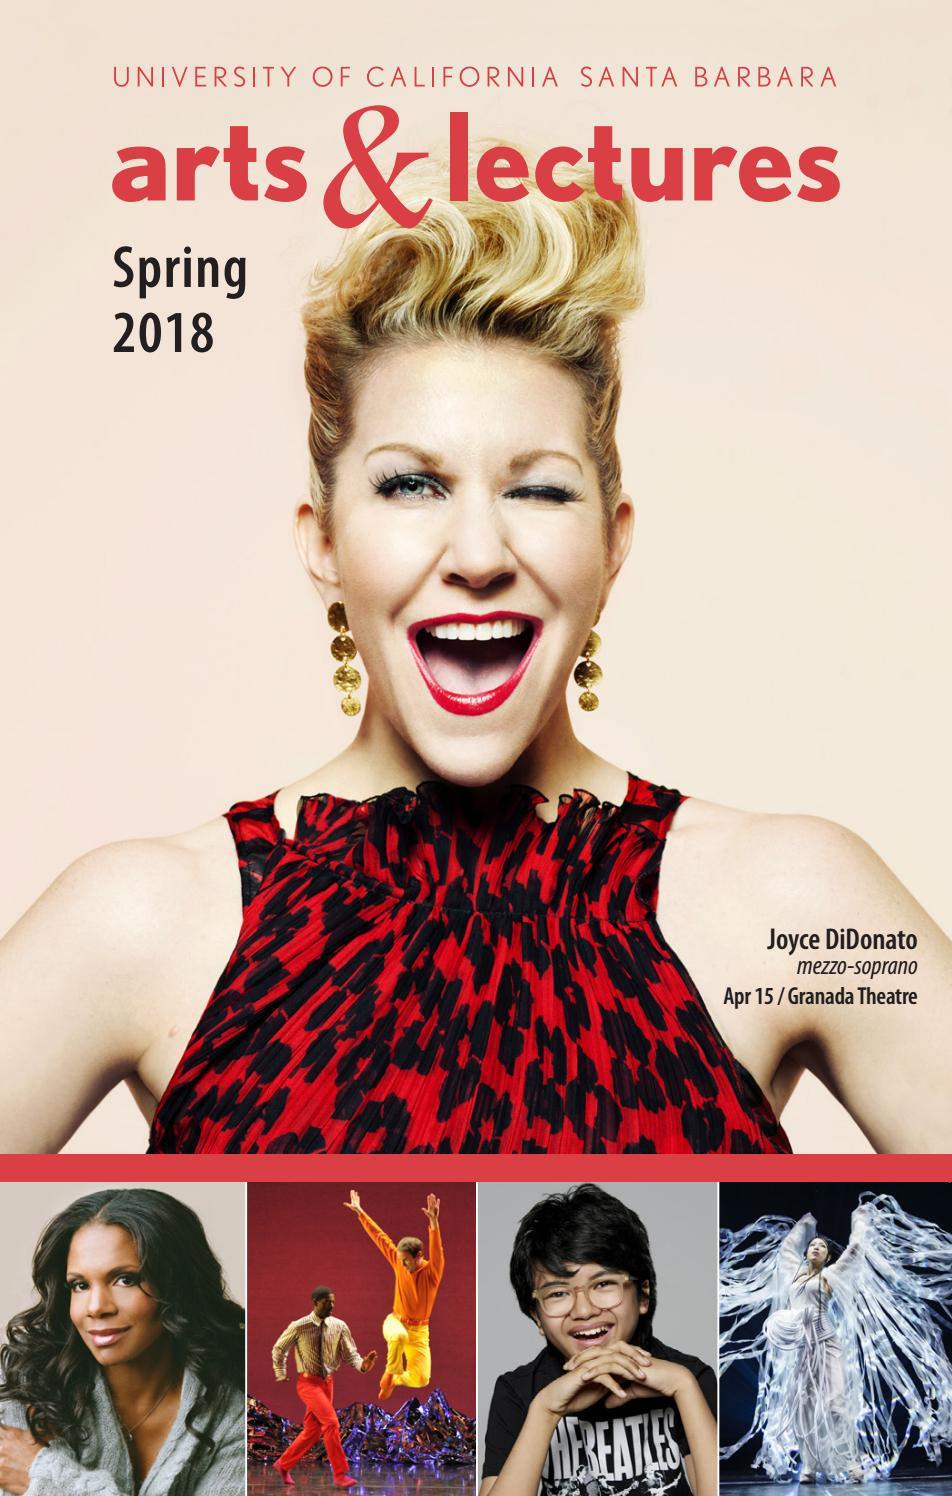 Ucsb Calendar.Ucsb Arts Lectures Spring Calendar 2018 By Ucsb Arts Lectures